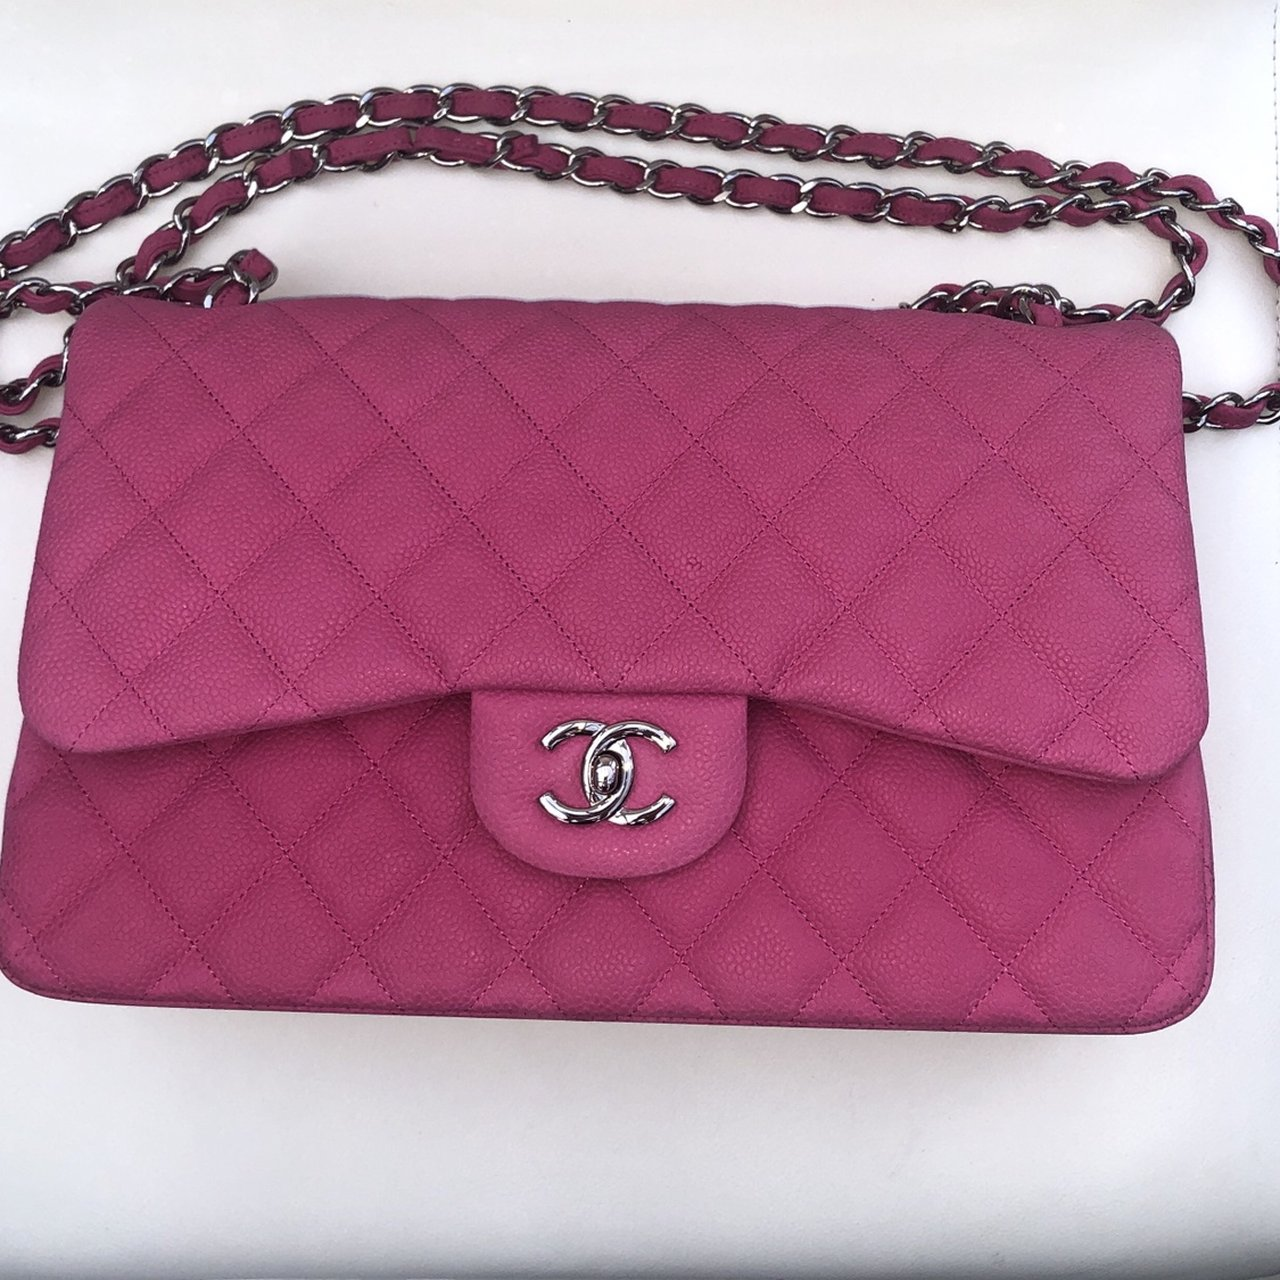 d2bdd6f40f Exceptional pink Chanel bag, in the suede caviar material, I - Depop